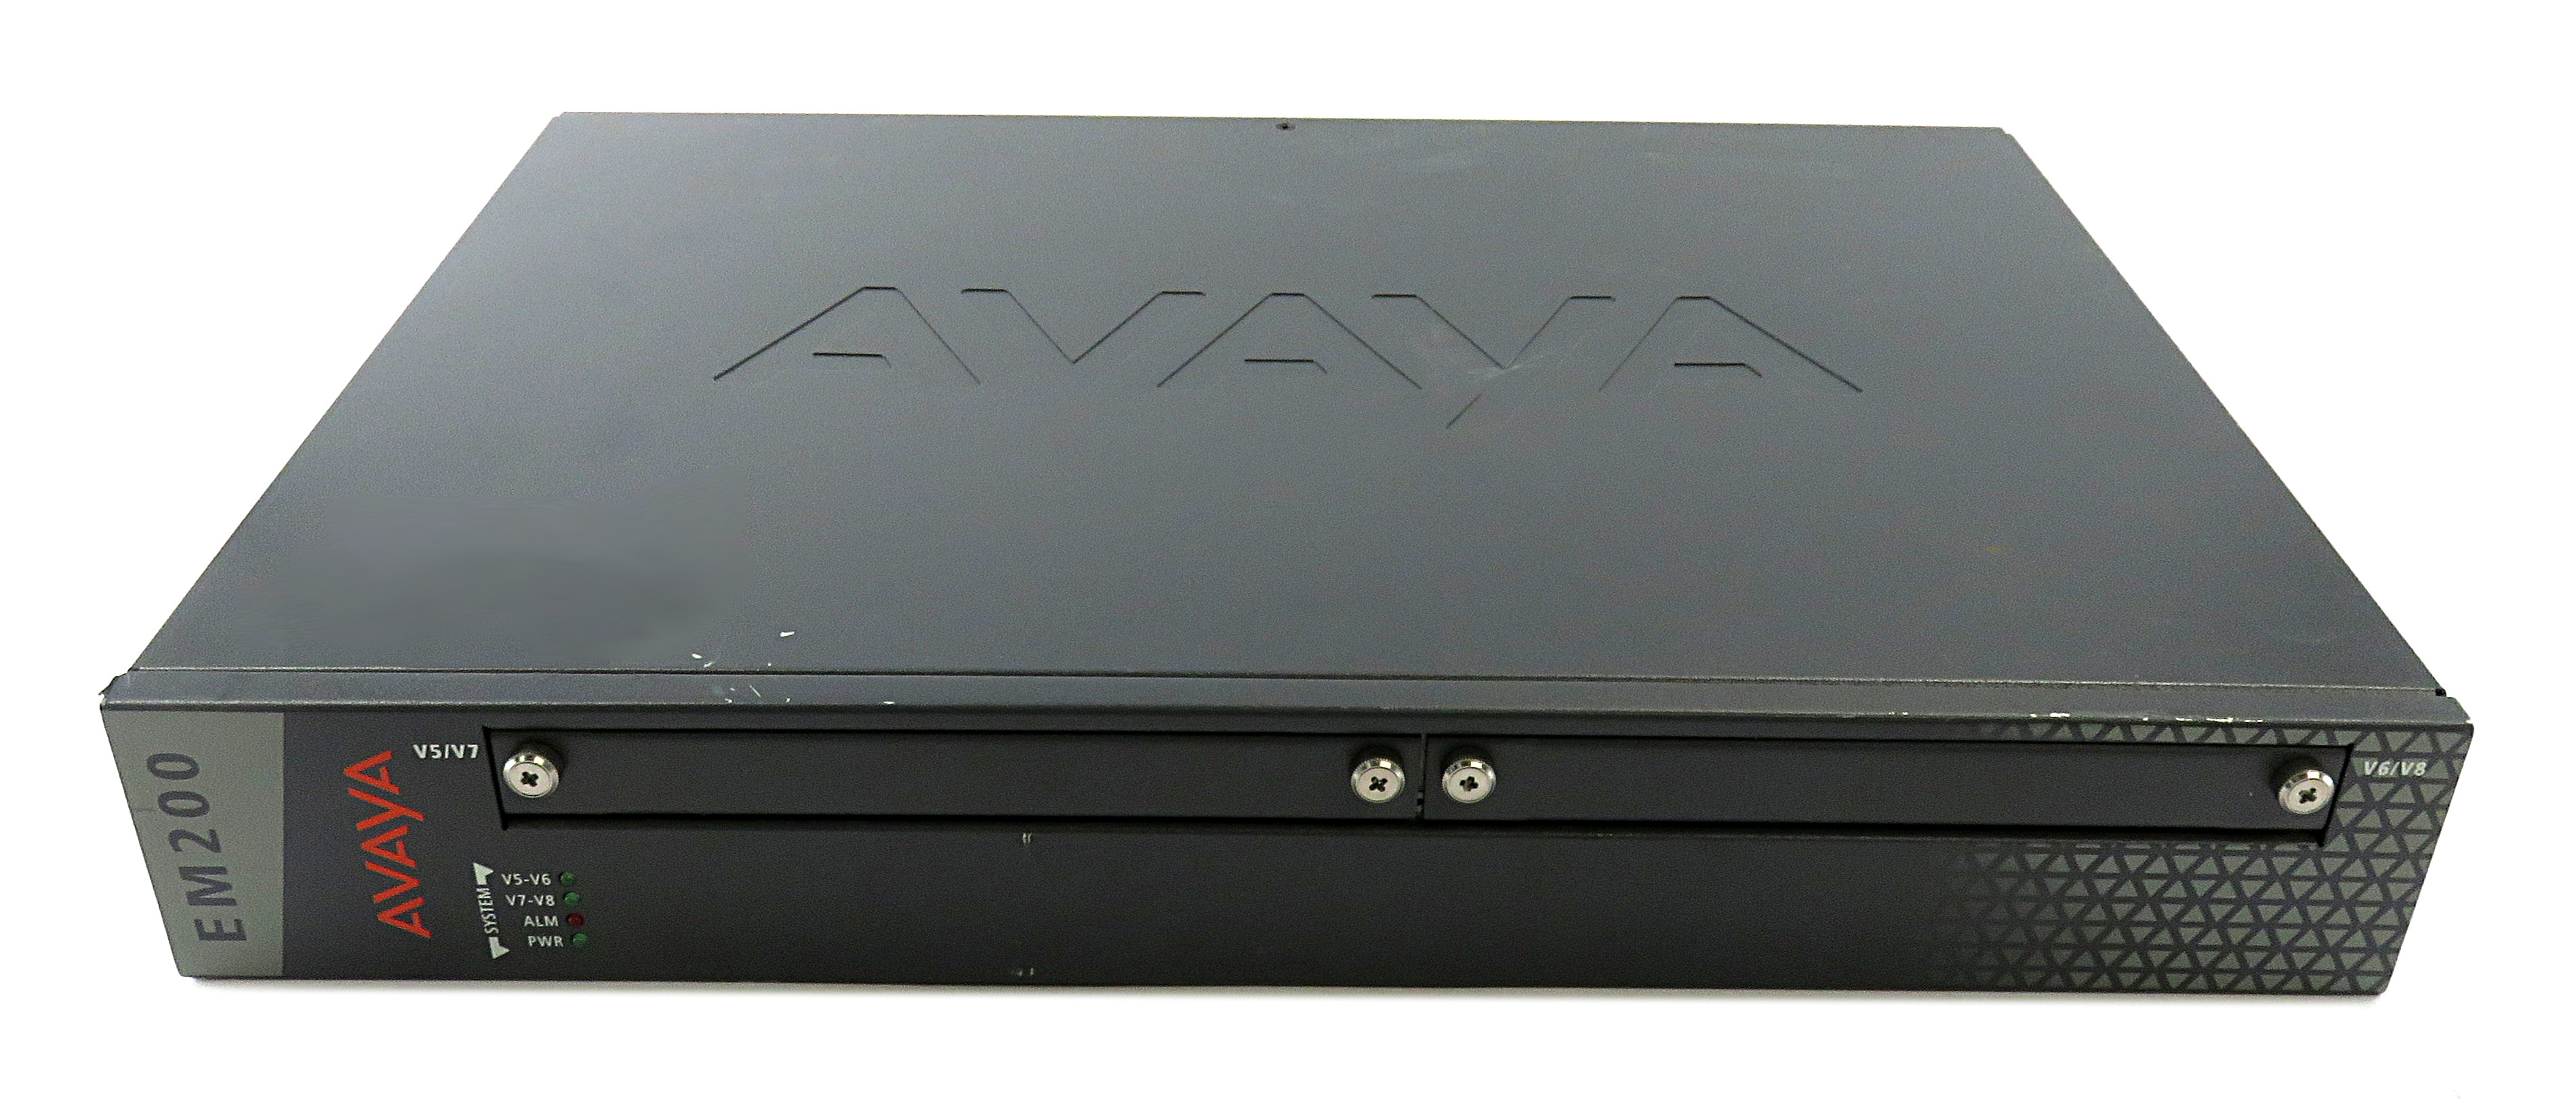 Avaya 700476401 Model EM200 Branch Expansion Unit Media Server S8300